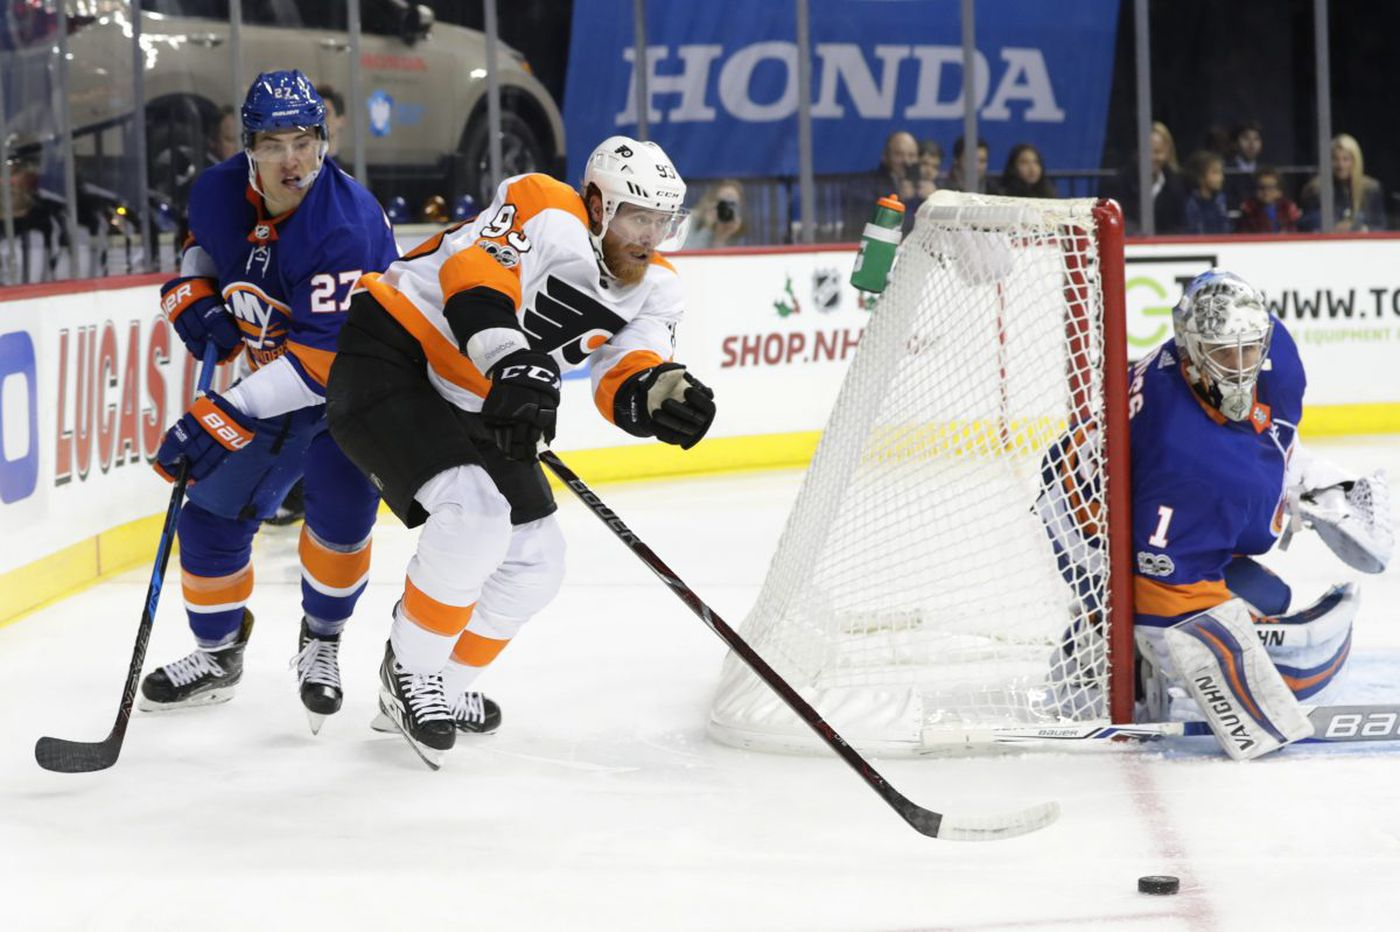 Flyers fall to Islanders in overtime, 4-3, and drop sixth straight